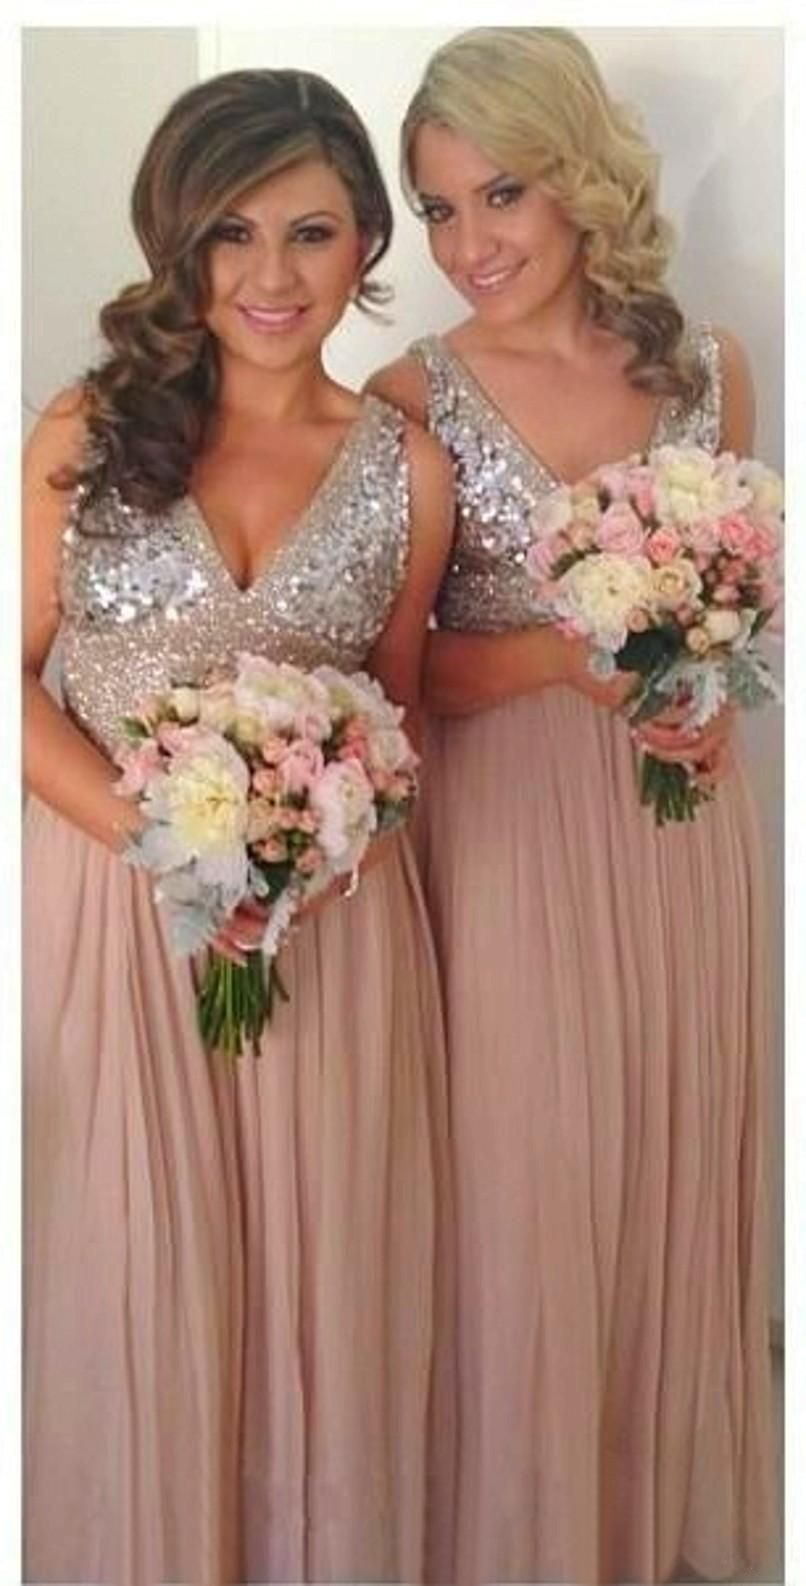 Sequins Chiffon V Neck Bridesmaid Dresses Plus Size Rose Gold Sparkly Maid  of Honor Bridal Wedding Party Gowns Maternity 2015 Custom Made 639e60a32681